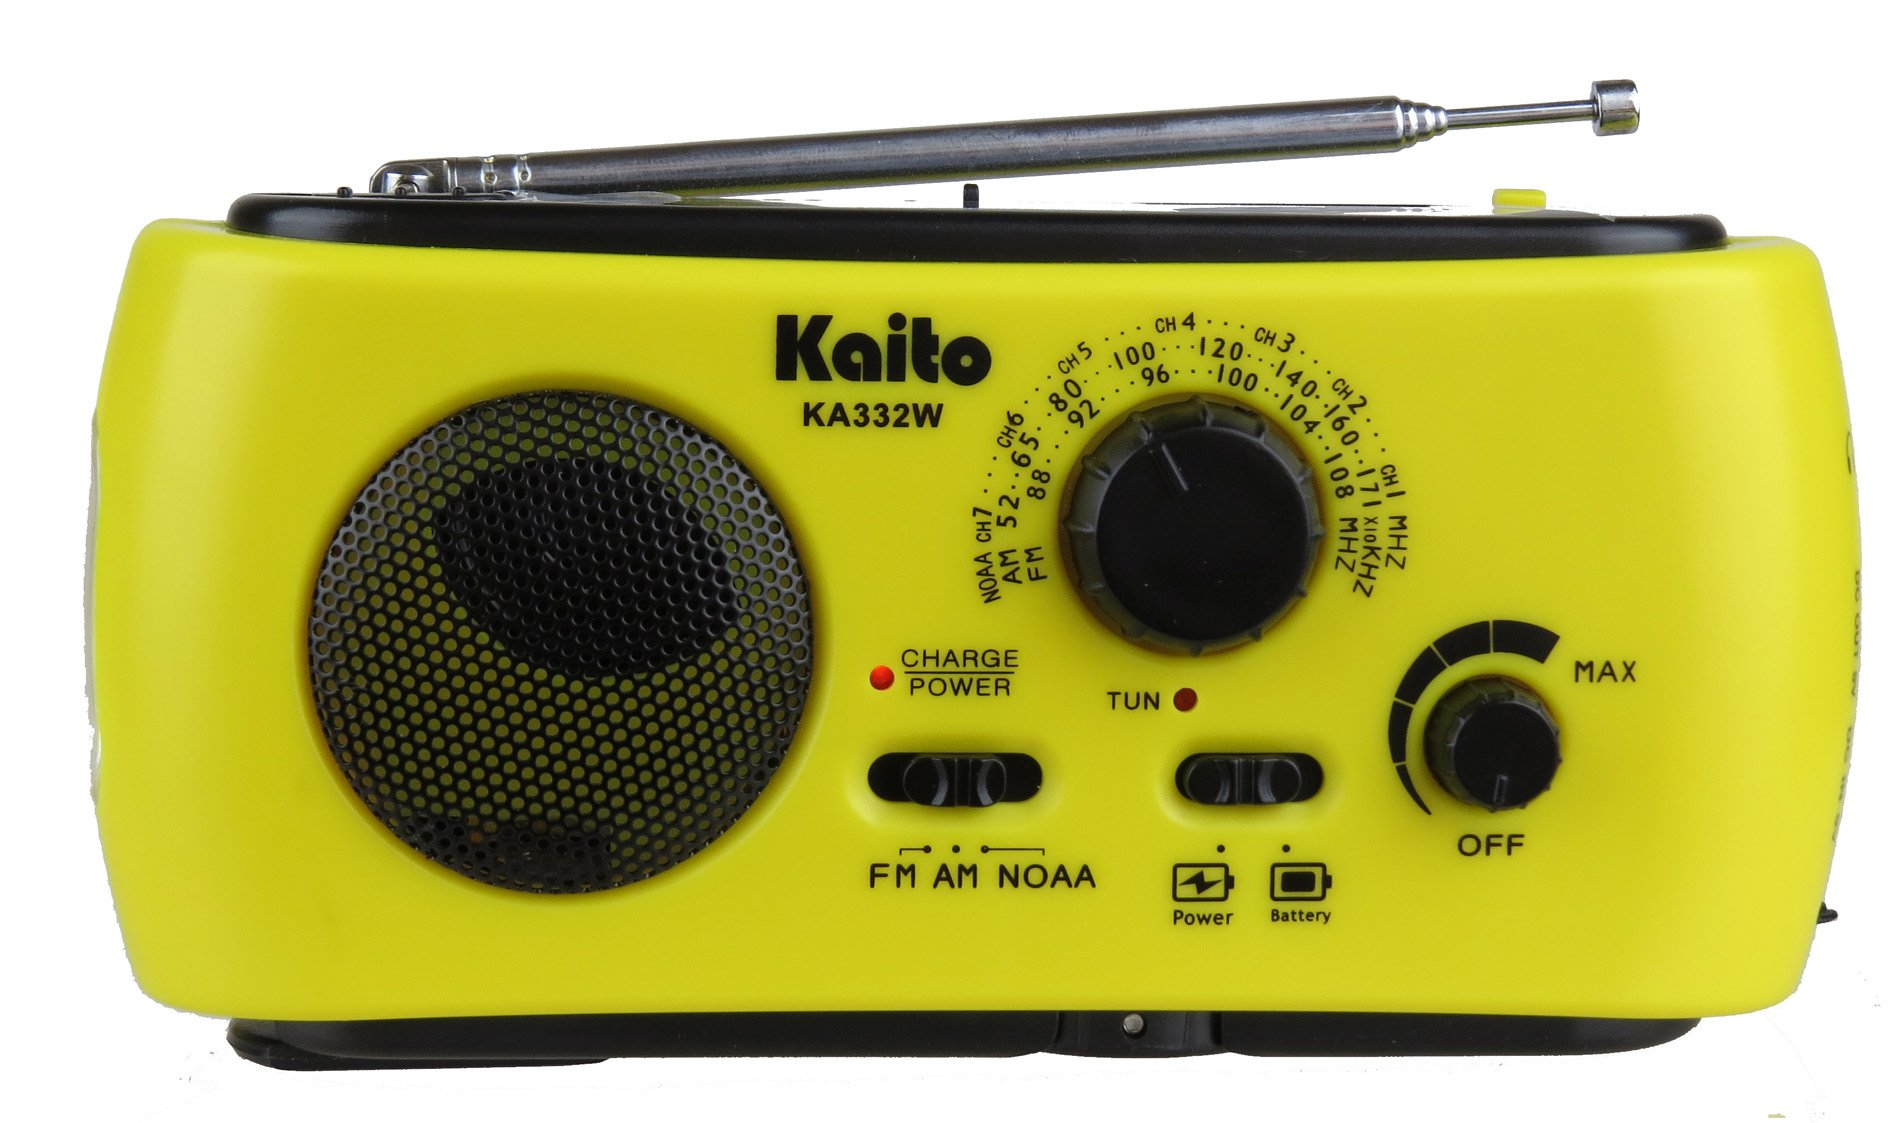 Kaito KA332W Portable Hand Crank Solar AM/FM NOAA Weather Radio with Cell Phone Charger & 3-LED Flashlight (Yellow)